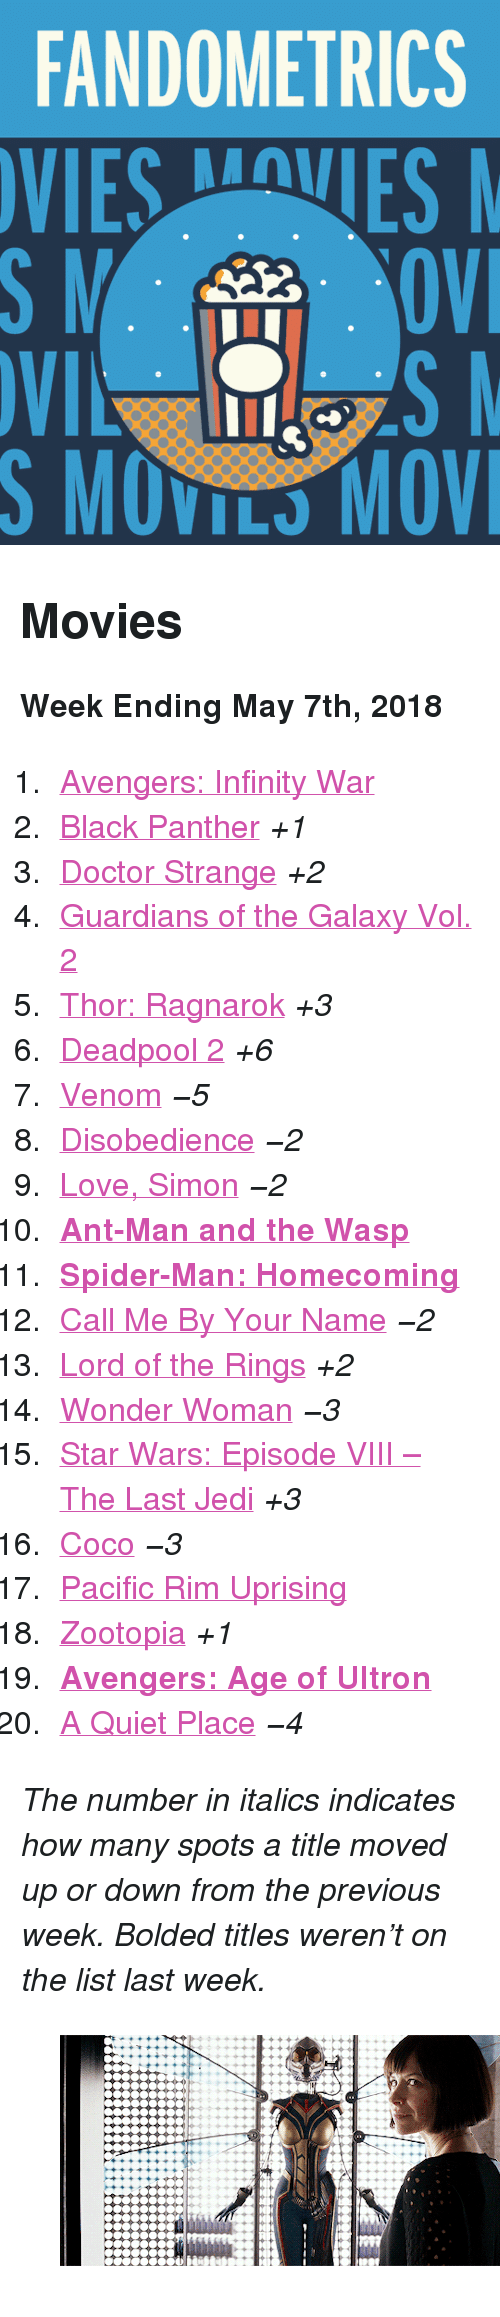 "Avengers Age of Ultron, CoCo, and Doctor: FANDOMETRICS  SMOVILS MOV <h2>Movies</h2><p><b>Week Ending May 7th, 2018</b></p><ol><li><a href=""http://www.tumblr.com/search/infinity%20war"">Avengers: Infinity War</a></li>  <li><a href=""http://www.tumblr.com/search/black%20panther"">Black Panther</a> <i>+1</i></li>  <li><a href=""http://www.tumblr.com/search/doctor%20strange"">Doctor Strange</a> <i>+2</i></li>  <li><a href=""http://www.tumblr.com/search/guardians%20of%20the%20galaxy"">Guardians of the Galaxy Vol. 2</a></li>  <li><a href=""http://www.tumblr.com/search/thor%20ragnarok"">Thor: Ragnarok</a> <i>+3</i></li>  <li><a href=""http://www.tumblr.com/search/deadpool"">Deadpool 2</a> <i>+6</i></li>  <li><a href=""http://www.tumblr.com/search/venom"">Venom</a> <i><i>−5</i></i></li>  <li><a href=""http://www.tumblr.com/search/disobedience"">Disobedience</a> <i><i>−2</i></i></li>  <li><a href=""http://www.tumblr.com/search/love%20simon"">Love, Simon</a> <i><i>−2</i></i></li>  <li><a href=""http://www.tumblr.com/search/ant%20man""><b>Ant-Man and the Wasp</b></a></li>  <li><a href=""http://www.tumblr.com/search/spiderman%20homecoming""><b>Spider-Man: Homecoming</b></a></li>  <li><a href=""http://www.tumblr.com/search/call%20me%20by%20your%20name"">Call Me By Your Name</a> <i><i>−2</i></i></li>  <li><a href=""http://www.tumblr.com/search/lotr"">Lord of the Rings</a> <i>+2</i></li>  <li><a href=""http://www.tumblr.com/search/wonder%20woman"">Wonder Woman</a> <i><i>−3</i></i></li>  <li><a href=""http://www.tumblr.com/search/the%20last%20jedi"">Star Wars: Episode VIII – The Last Jedi</a> <i>+3</i></li>  <li><a href=""http://www.tumblr.com/search/coco"">Coco</a> <i><i>−3</i></i></li>  <li><a href=""http://www.tumblr.com/search/pacific%20rim"">Pacific Rim Uprising</a></li>  <li><a href=""http://www.tumblr.com/search/zootopia"">Zootopia</a> <i>+1</i></li>  <li><a href=""http://www.tumblr.com/search/age%20of%20ultron""><b>Avengers: Age of Ultron</b></a></li>  <li><a href=""http://www.tumblr.com/search/a%20quiet%20place"">A Quiet Place</a> <i><i>−4</i></i></li></ol><p><i>The number in italics indicates how many spots a title moved up or down from the previous week. Bolded titles weren't on the list last week.</i></p><figure class=""tmblr-full"" data-orig-height=""151"" data-orig-width=""268"" data-tumblr-attribution=""comicbookfilms:6cMY4FYbTPoP2qDLiEFeig:ZskSek2XTa2sS""><img src=""https://78.media.tumblr.com/ae86024af96e3eb7bbda9696754ce216/tumblr_p7vbra3M9k1uuxzsno1_500.gif"" data-orig-height=""151"" data-orig-width=""268""/></figure>"